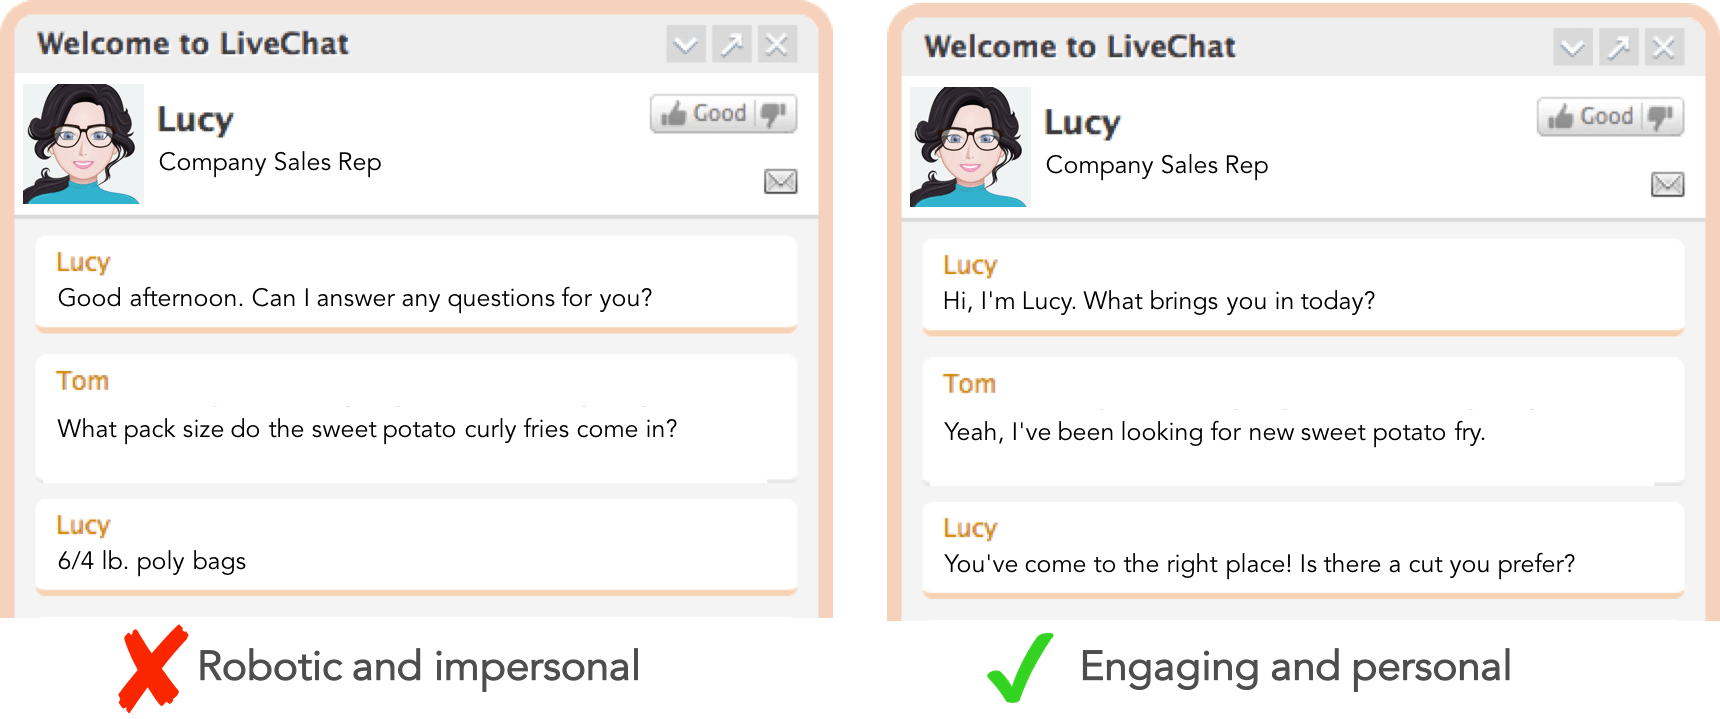 In a live-chat environment with customers, keep it conversational and don't be afraid to inject some personality.